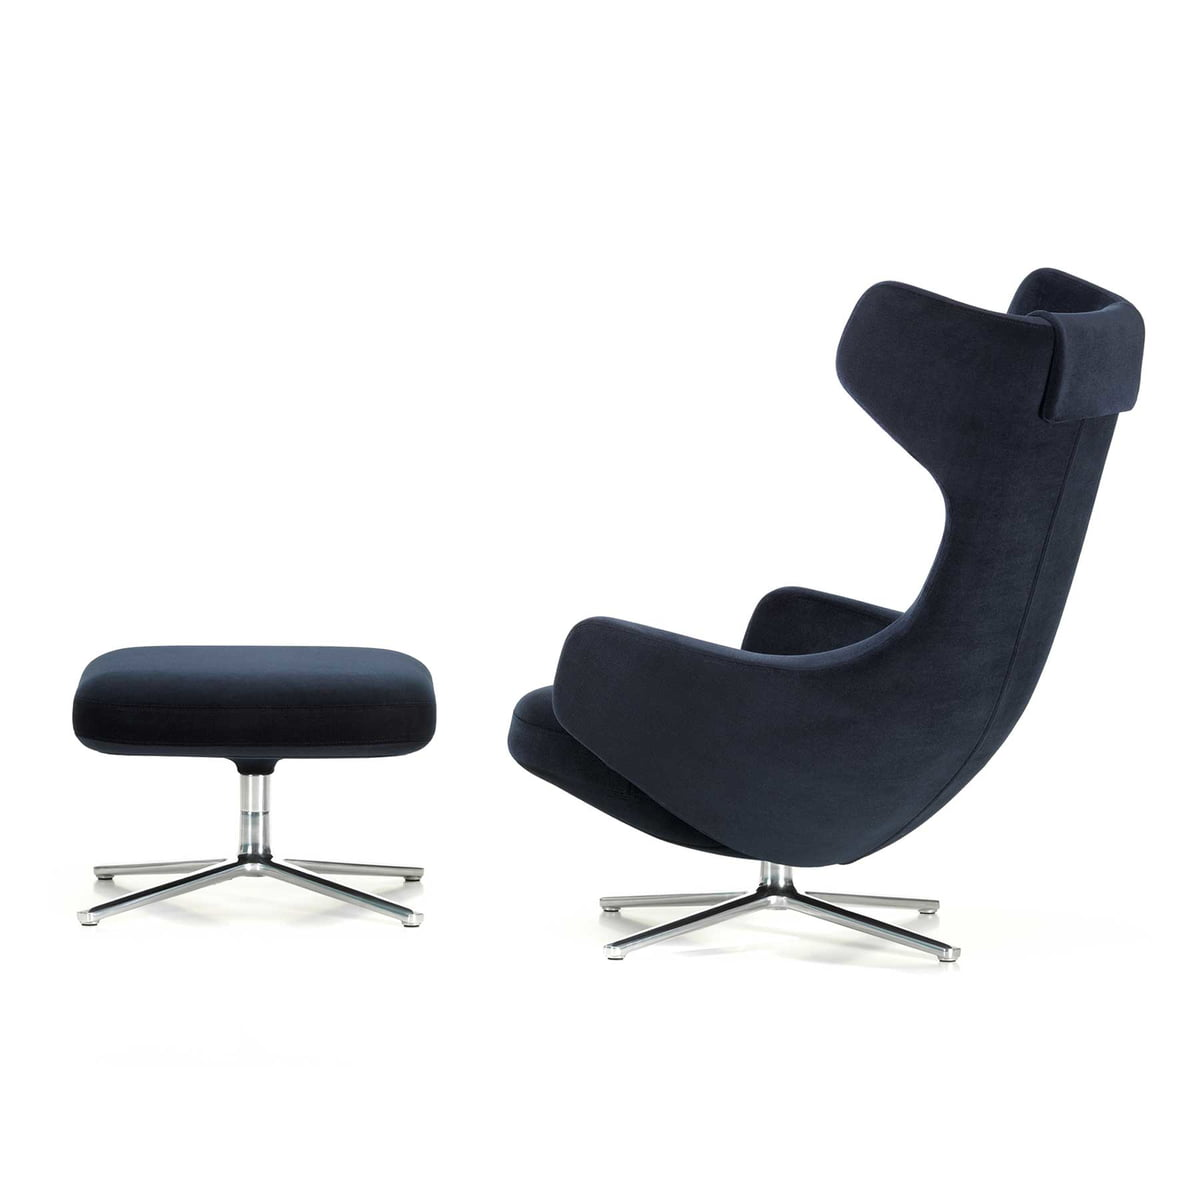 Grand Repos Sessel Grand Repos Sessel 43 Ottoman Vitra Shop